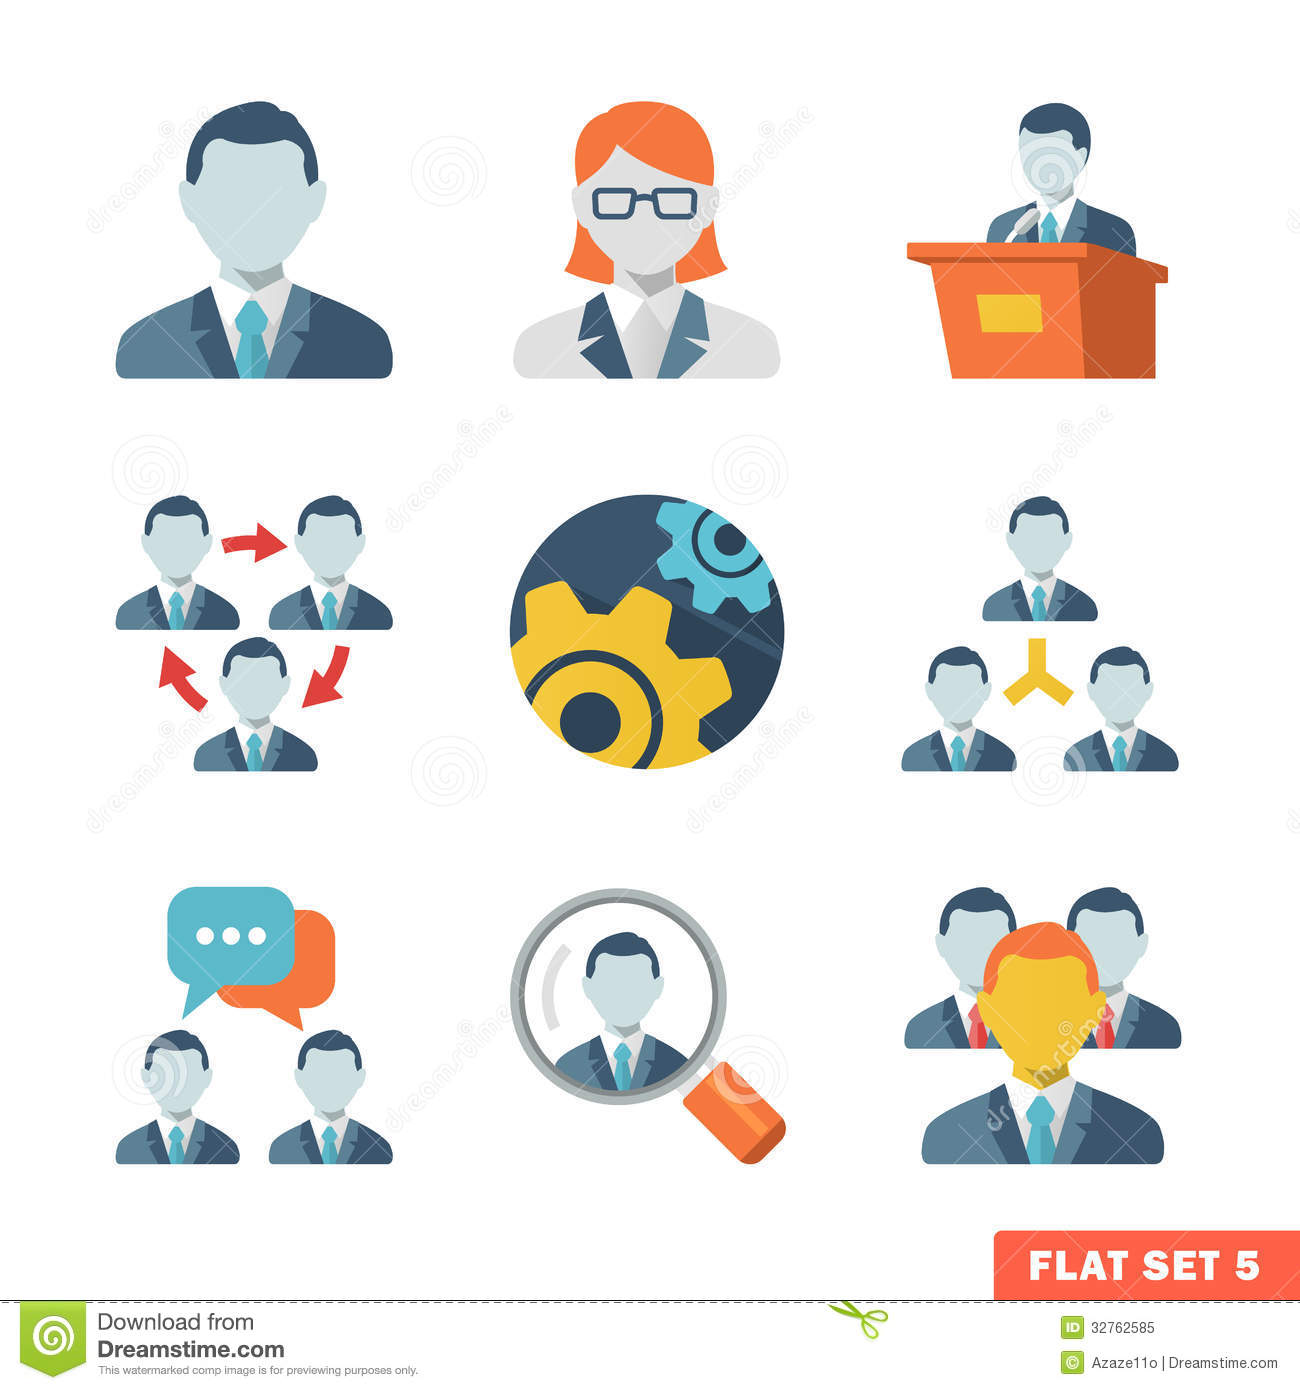 17 Free Business Person Icon Flat Images